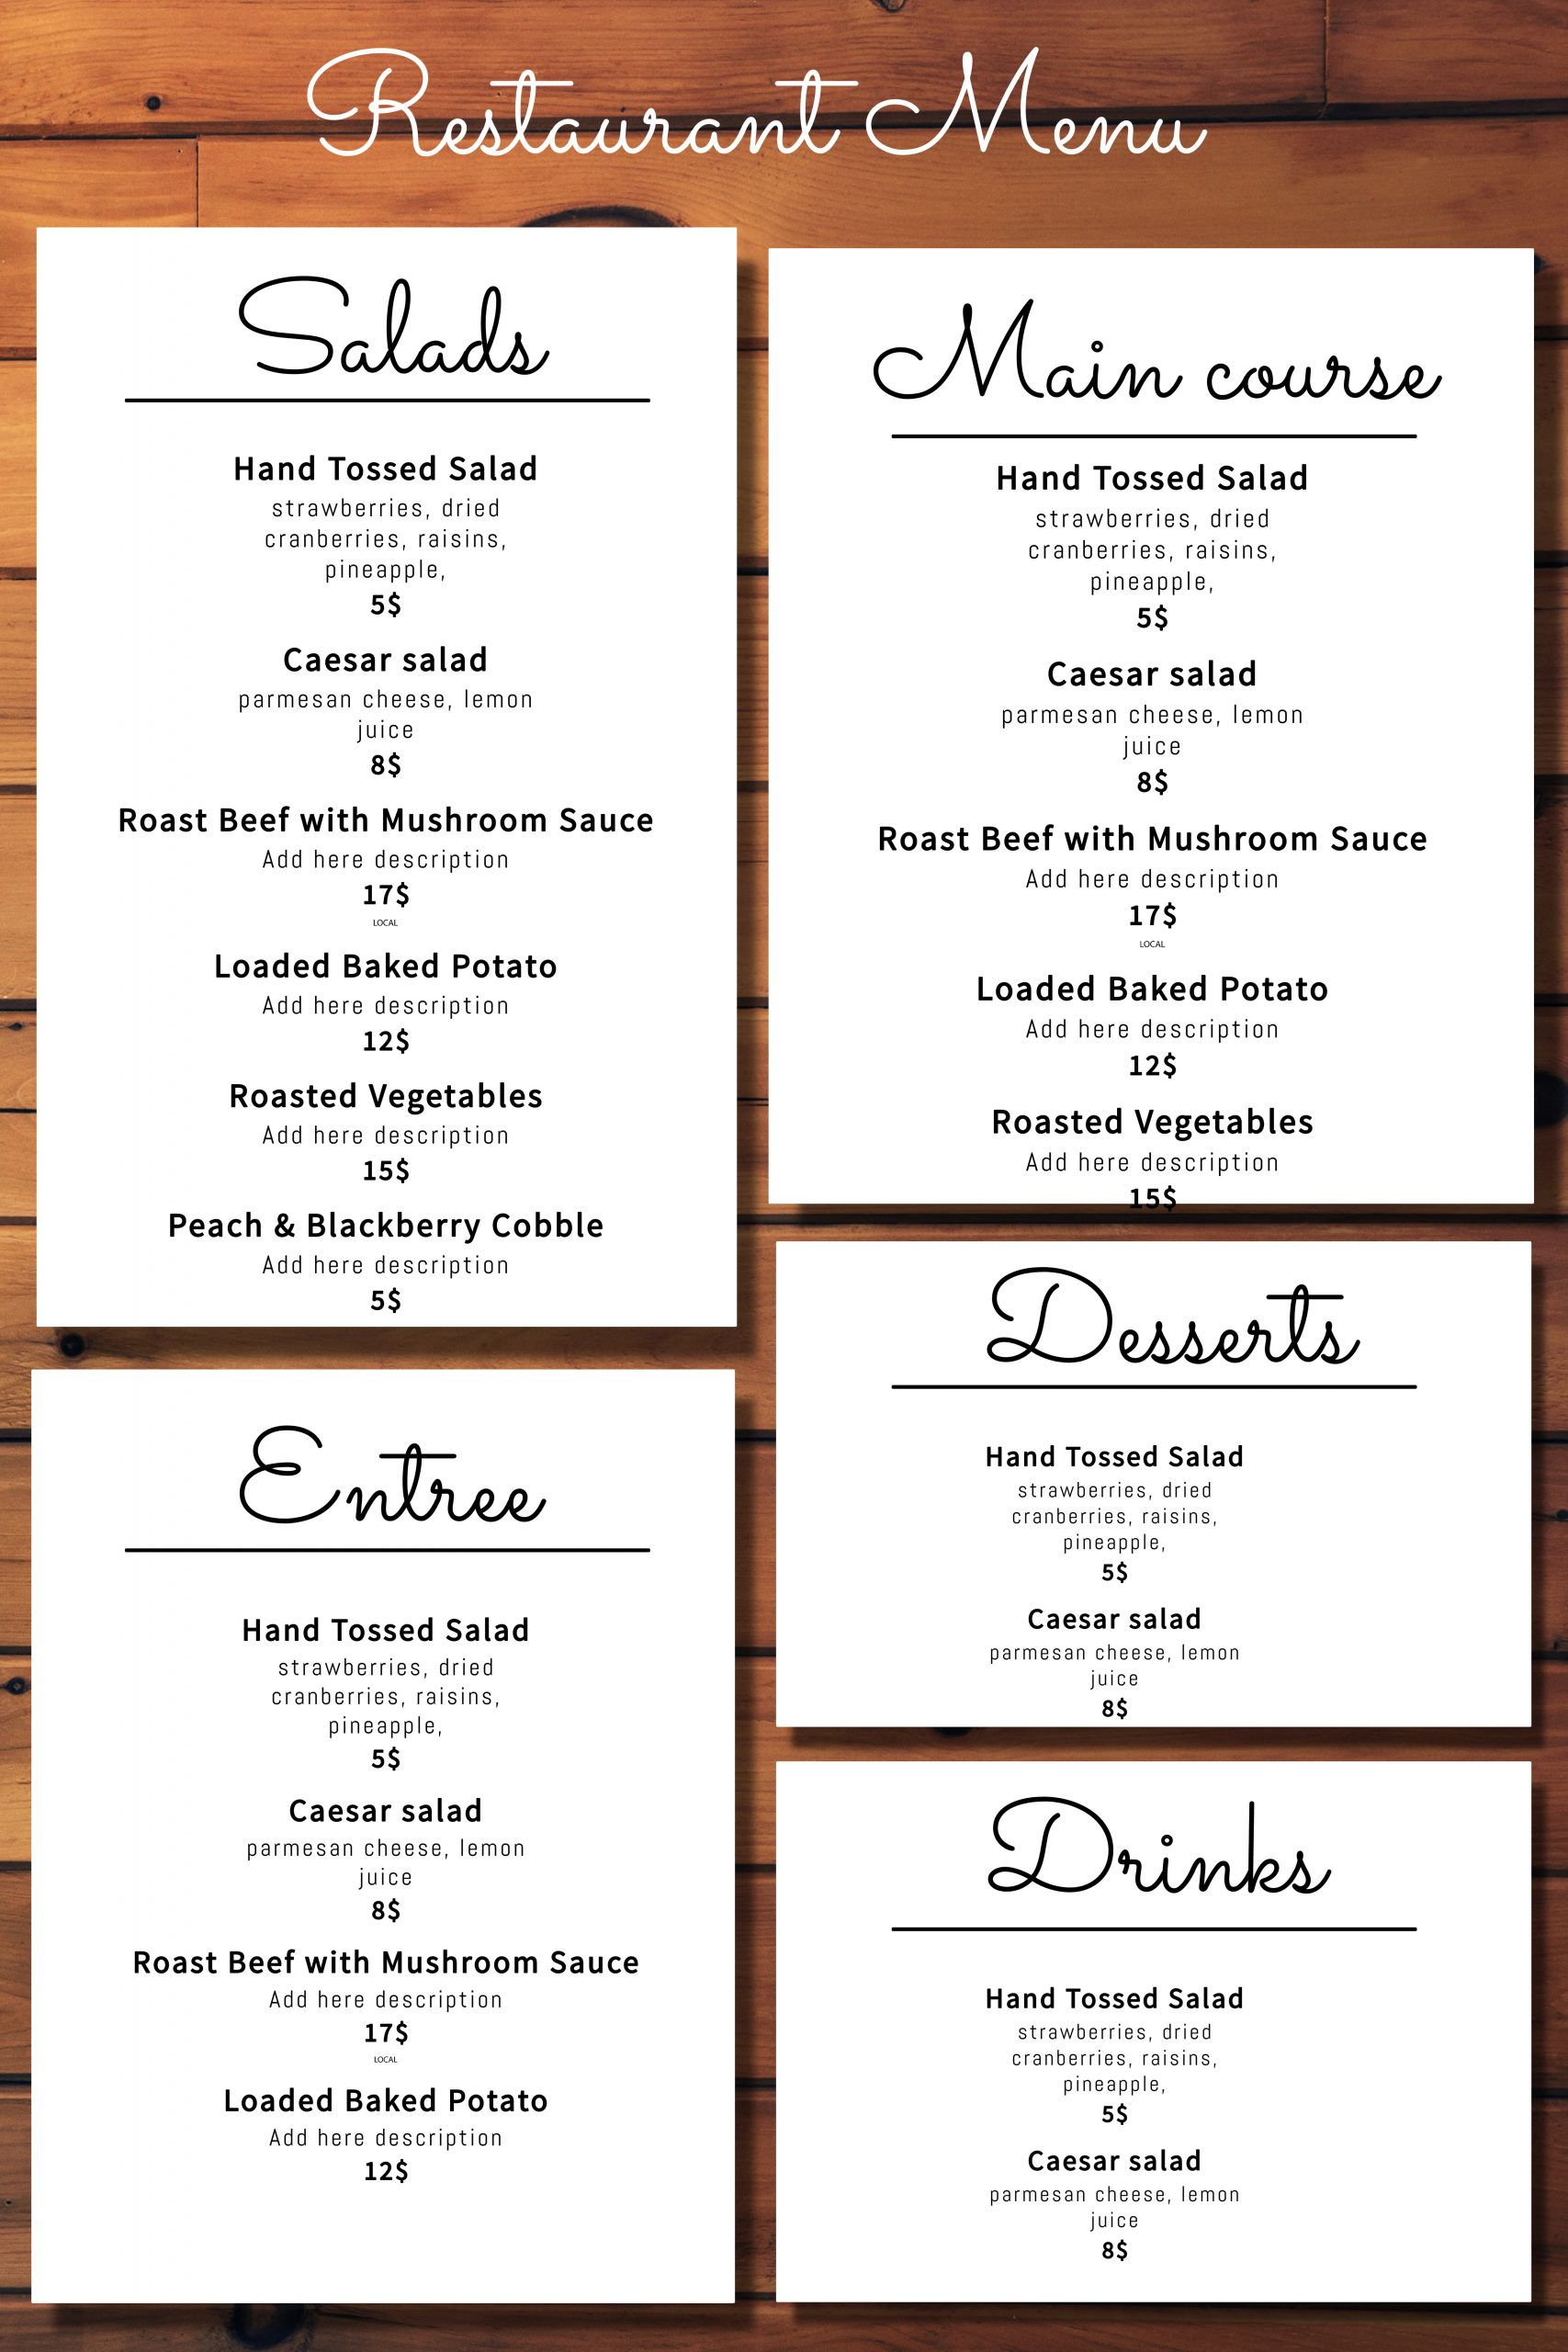 Simple Menu Design with Boxes